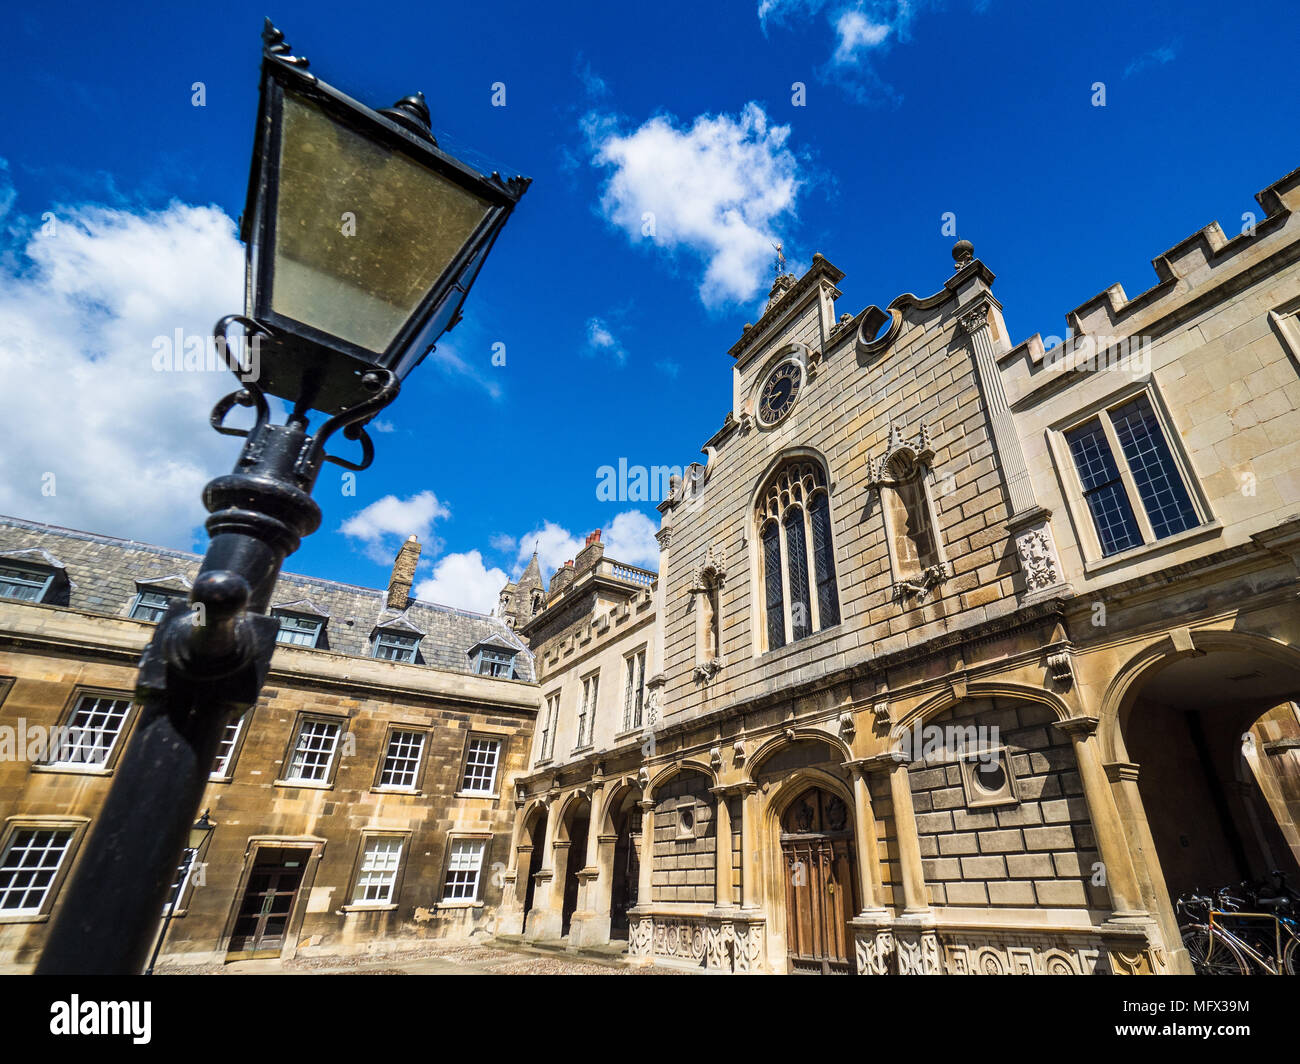 Peterhouse College Cambridge - The Clock Tower of Peterhouse College, part of the University of Cambridge. The college was founded in 1284. - Stock Image